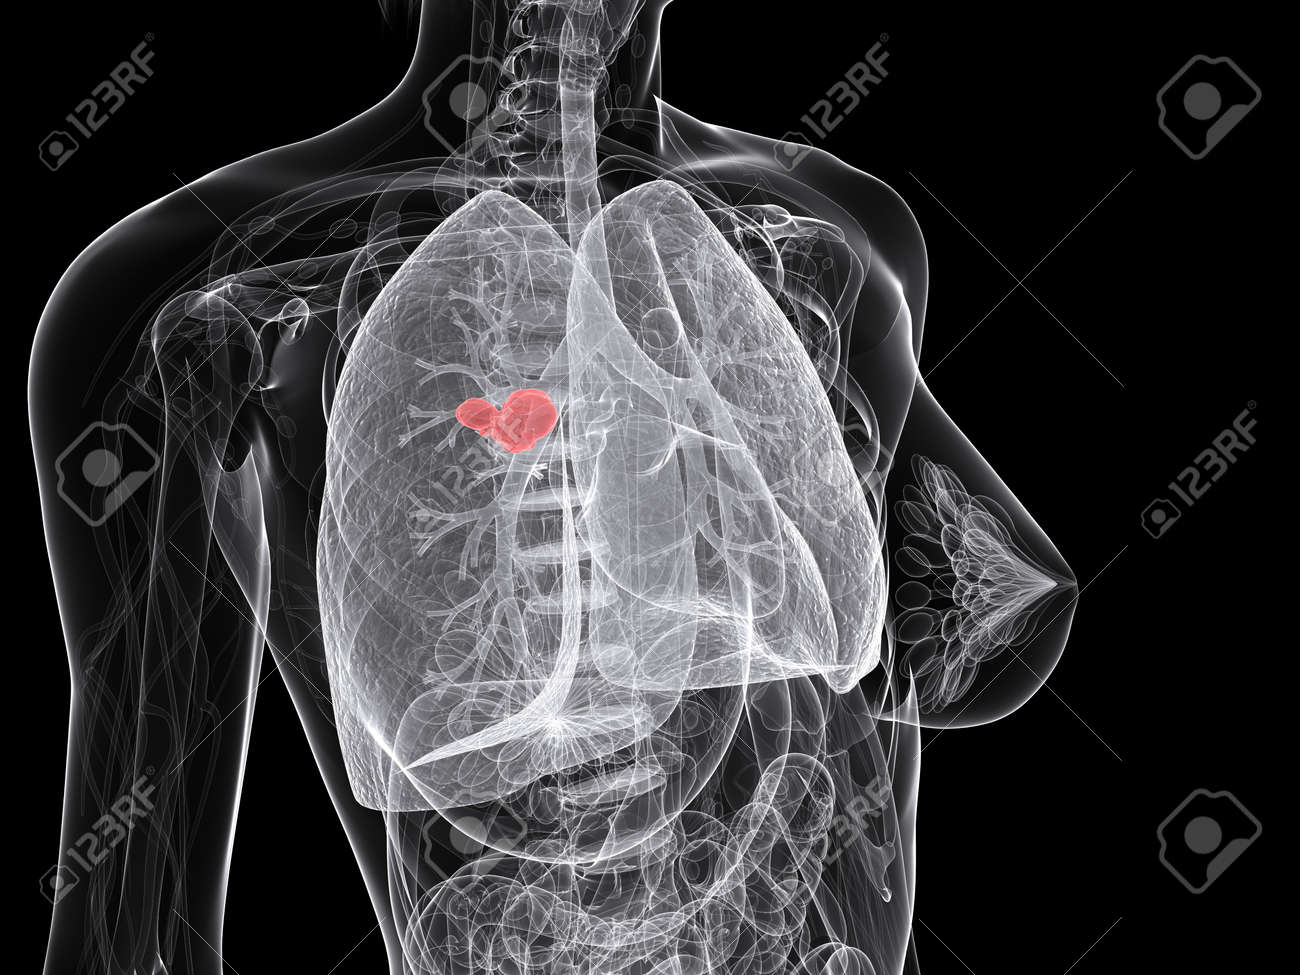 lung cancer Stock Photo - 7286284